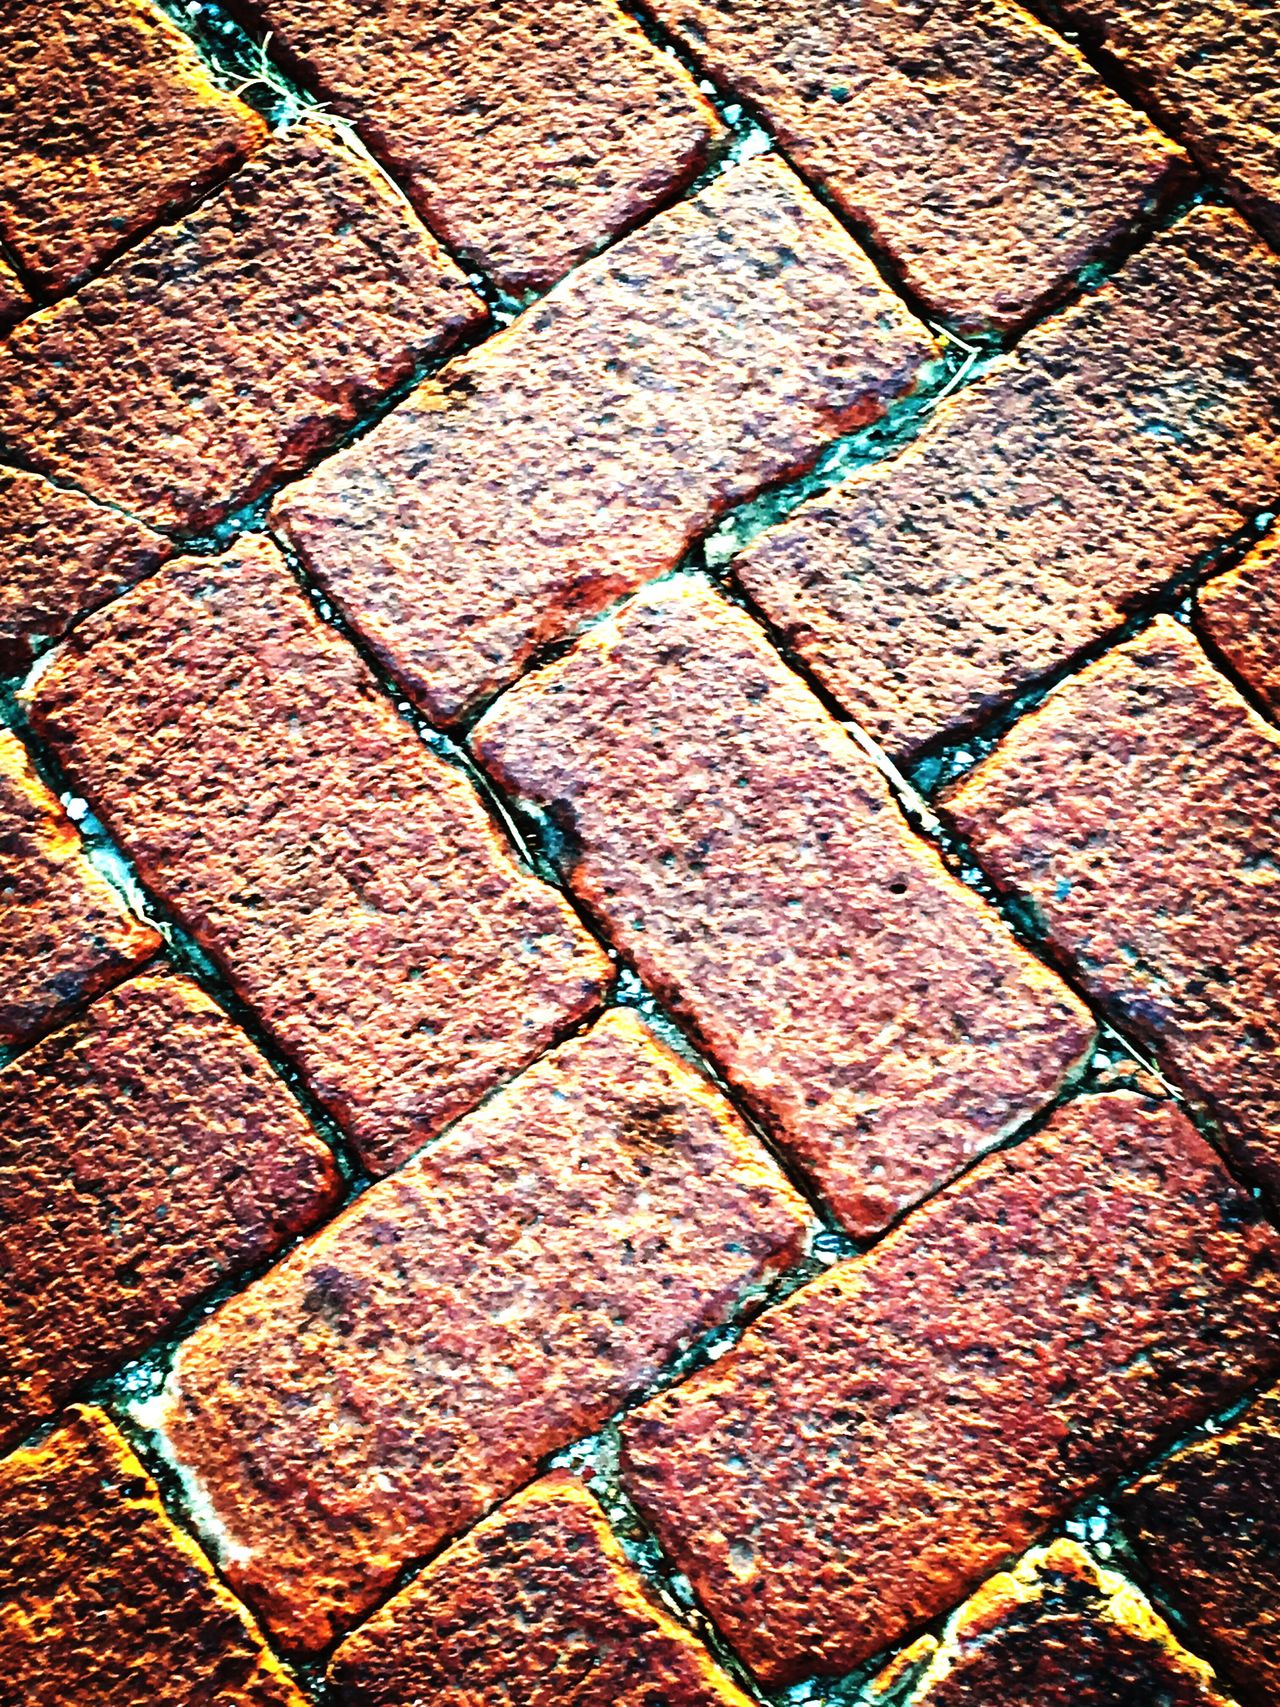 Maximum Closeness small town old red brick roads Backgrounds Full Frame Pattern Textured  No People Day Outdoors Close-up Brick Redbrick Road Street Streetphotography Old